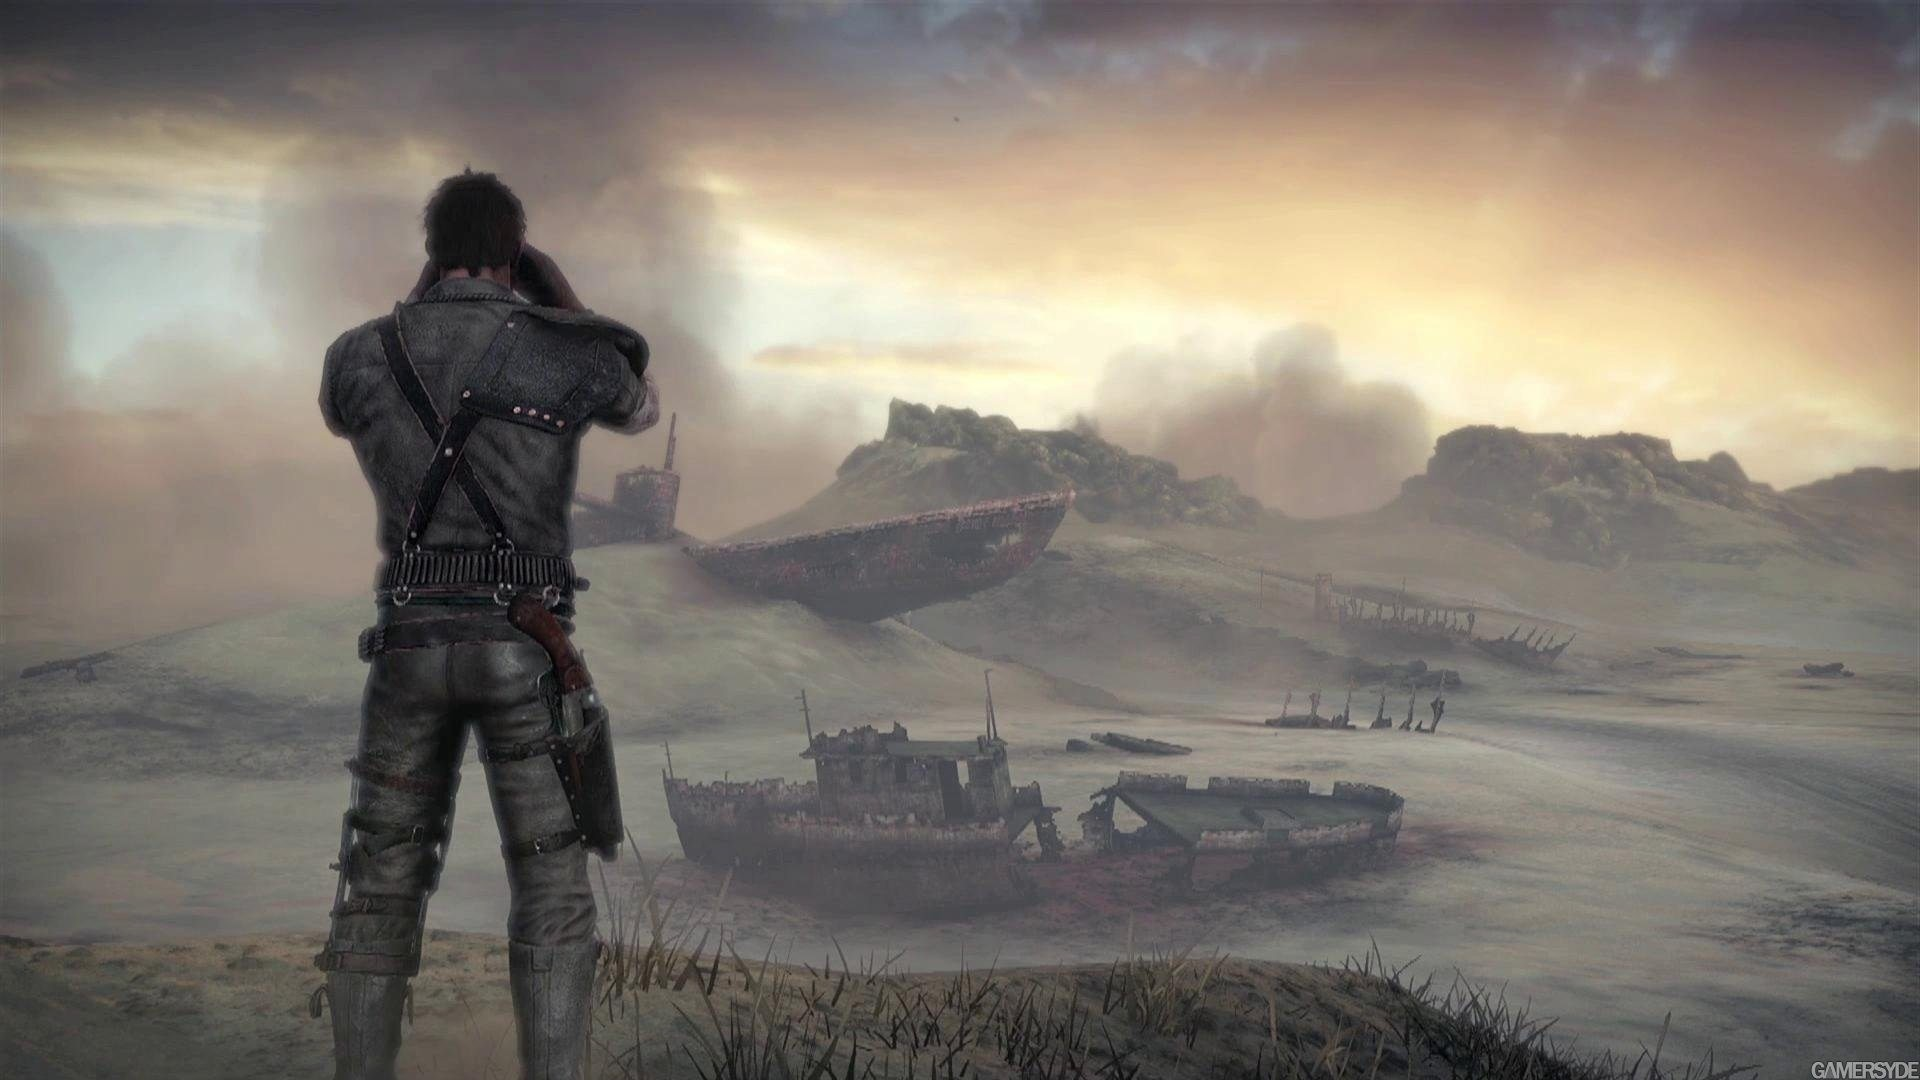 a Mad Max wallpaper: a Mad Max wallpaper.  Metro_2033_Soldiers_Warriors_Last_Light_Games_Fantasy_sci_fi_apocalyptic_1920x1200